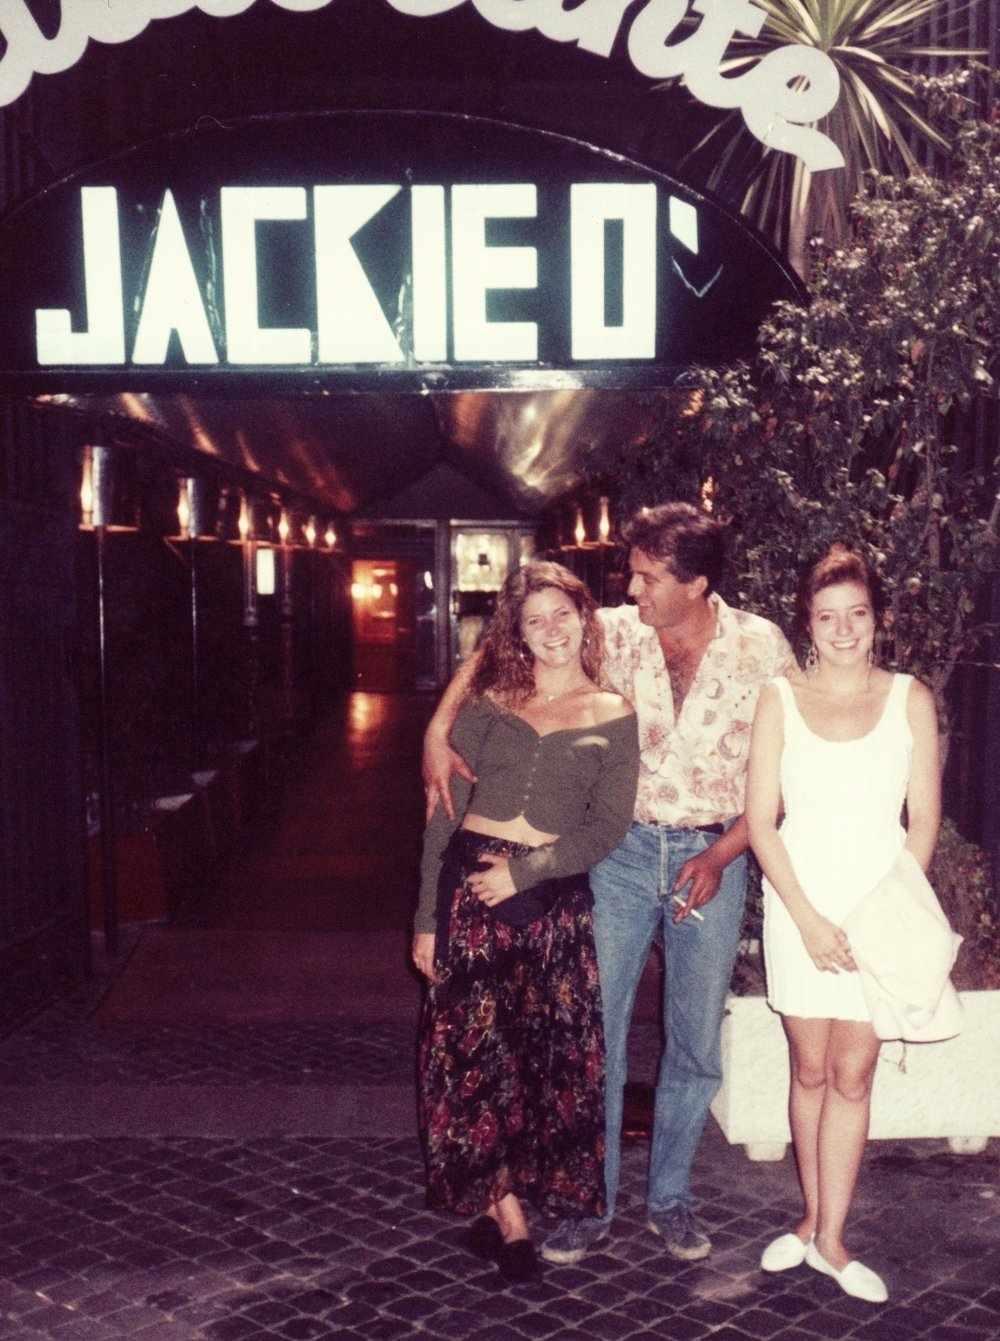 My sister and I with an admirer at the Jackie O' Ristorante, Roma, Italia - August 1990